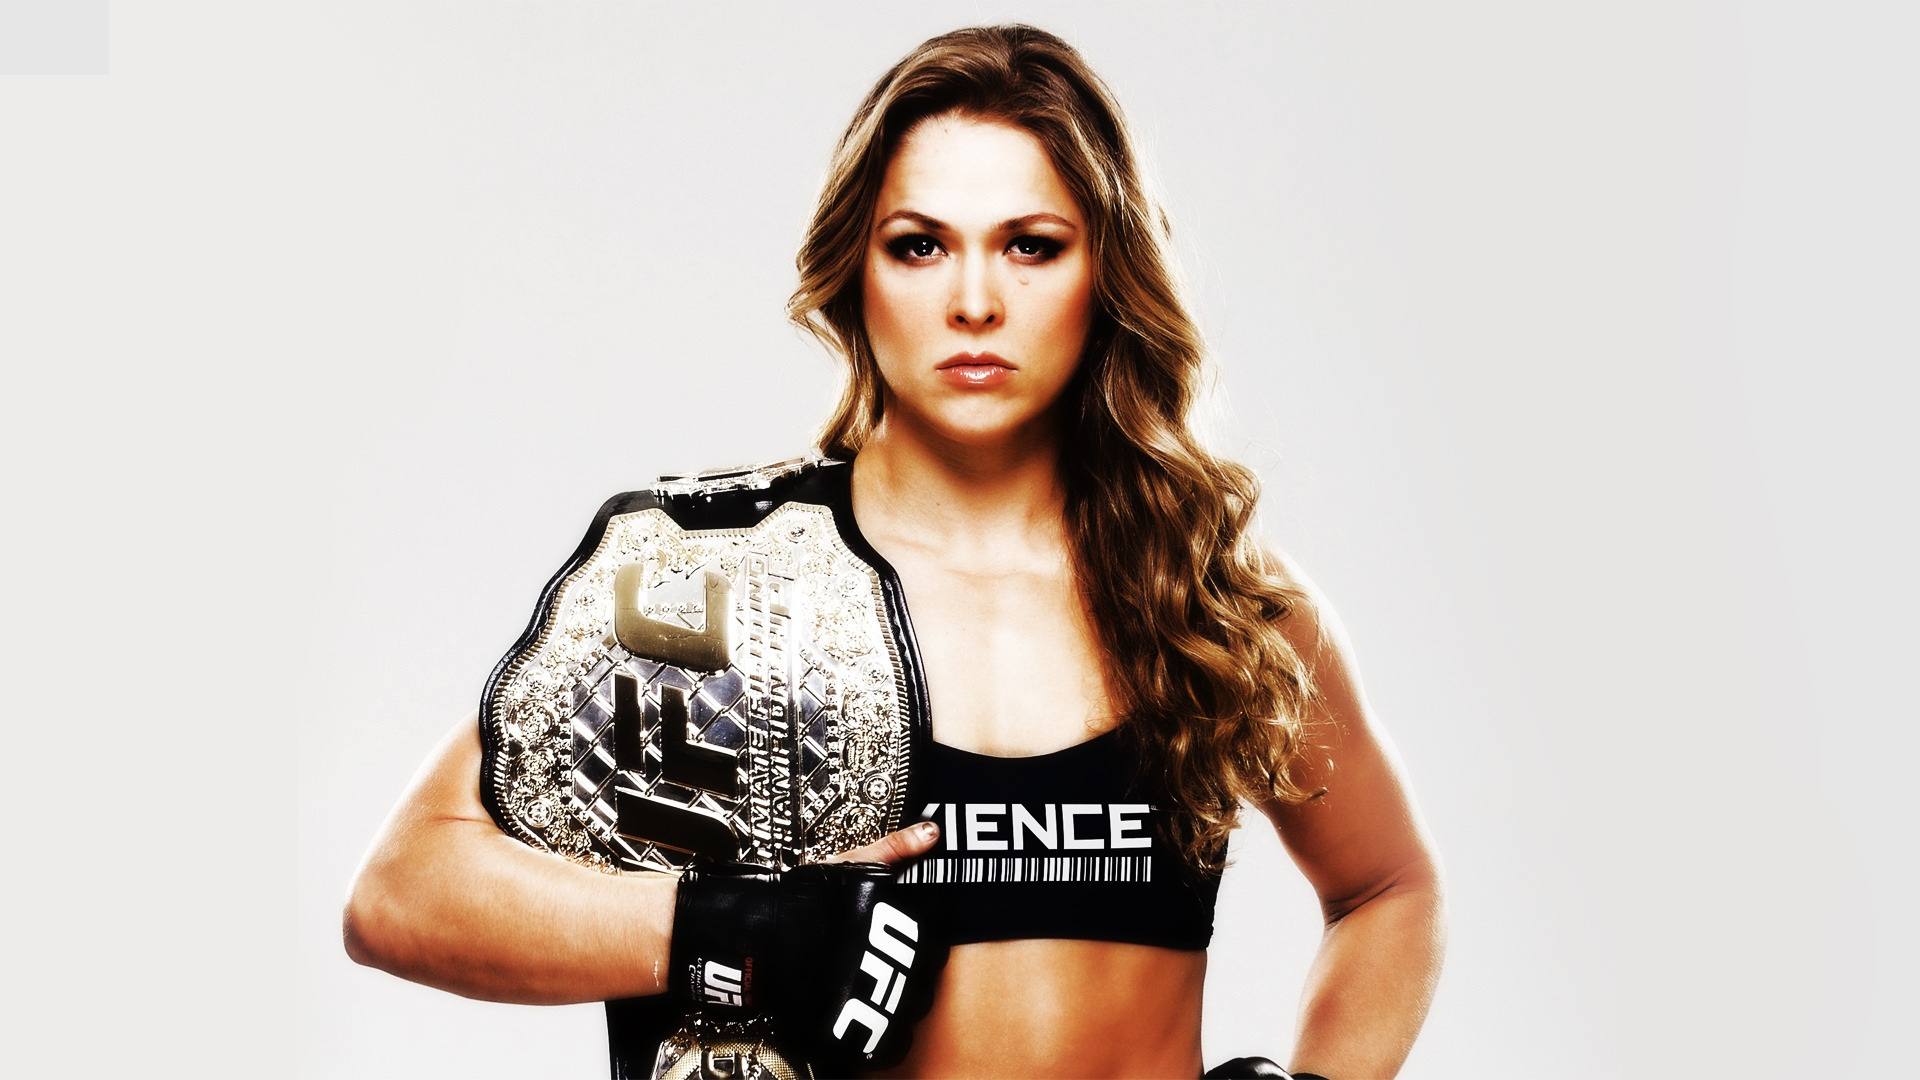 Ninja Girl Wallpapers Hd Ronda Rousey Wallpapers Pictures Images